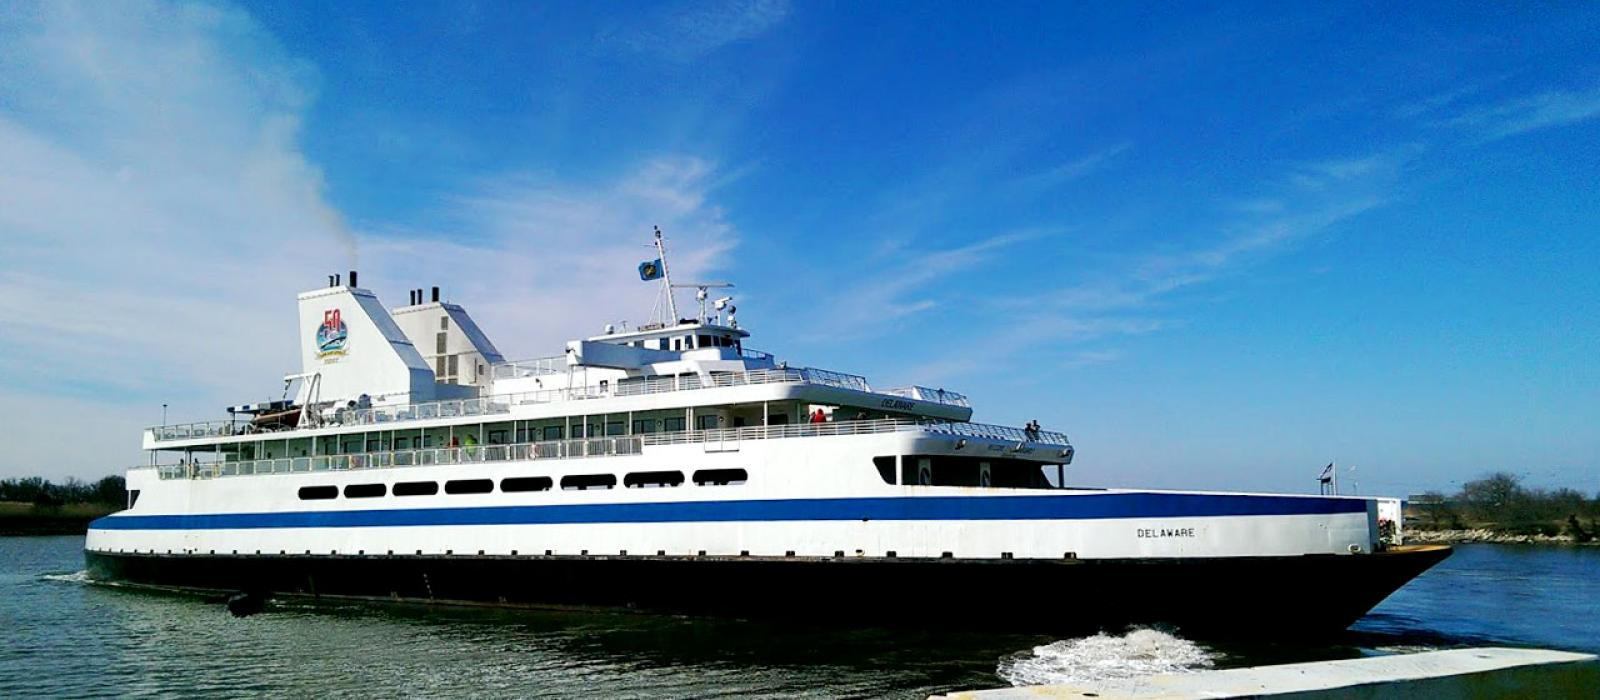 cape may-lewes ferry | passenger & car ferry across the delaware bay